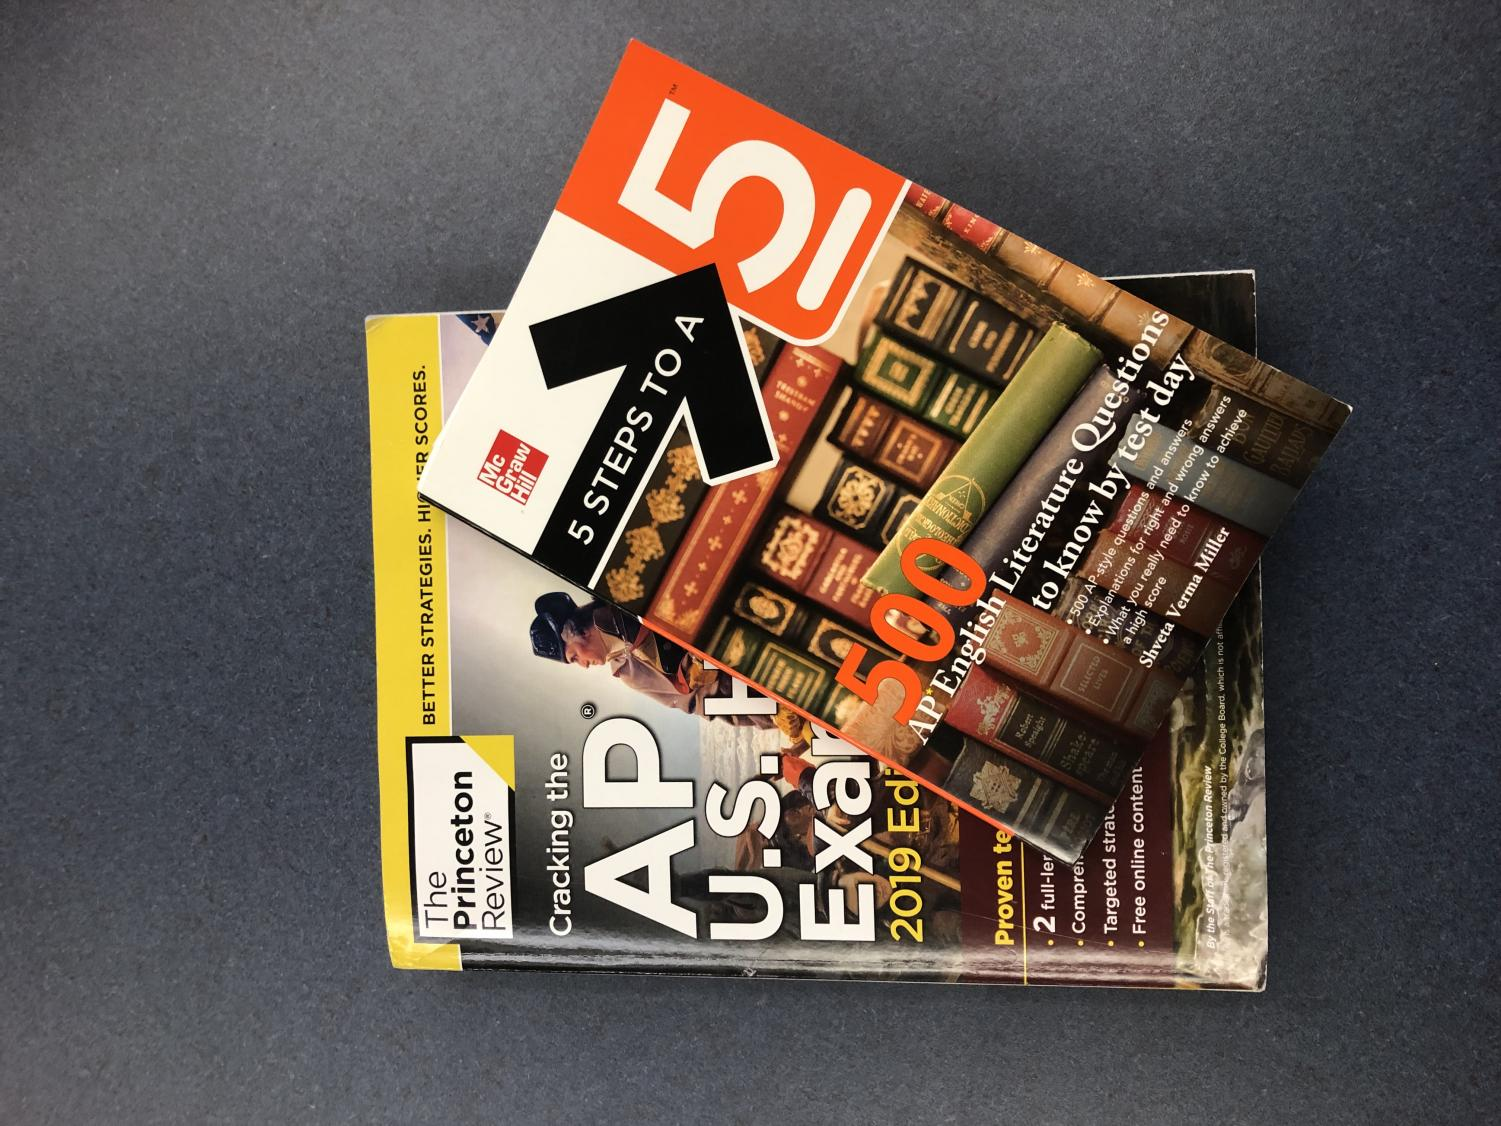 Review books for AP courses are a common sight among those taking. With the course changes these sights might become less common in favor of actual college classes.